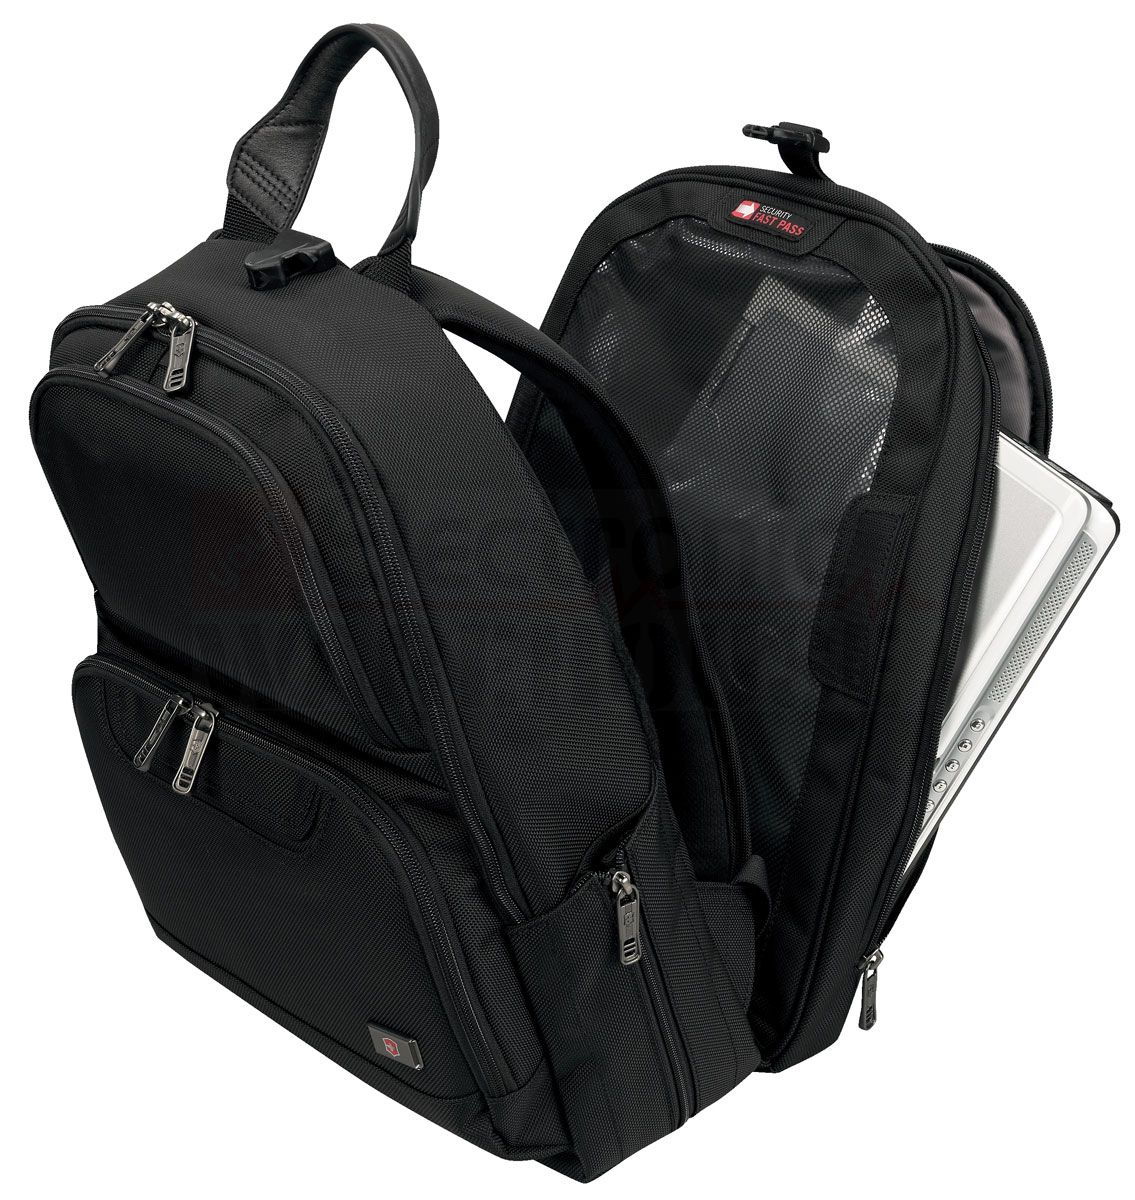 18 Laptop Backpack Qzh3nWVo